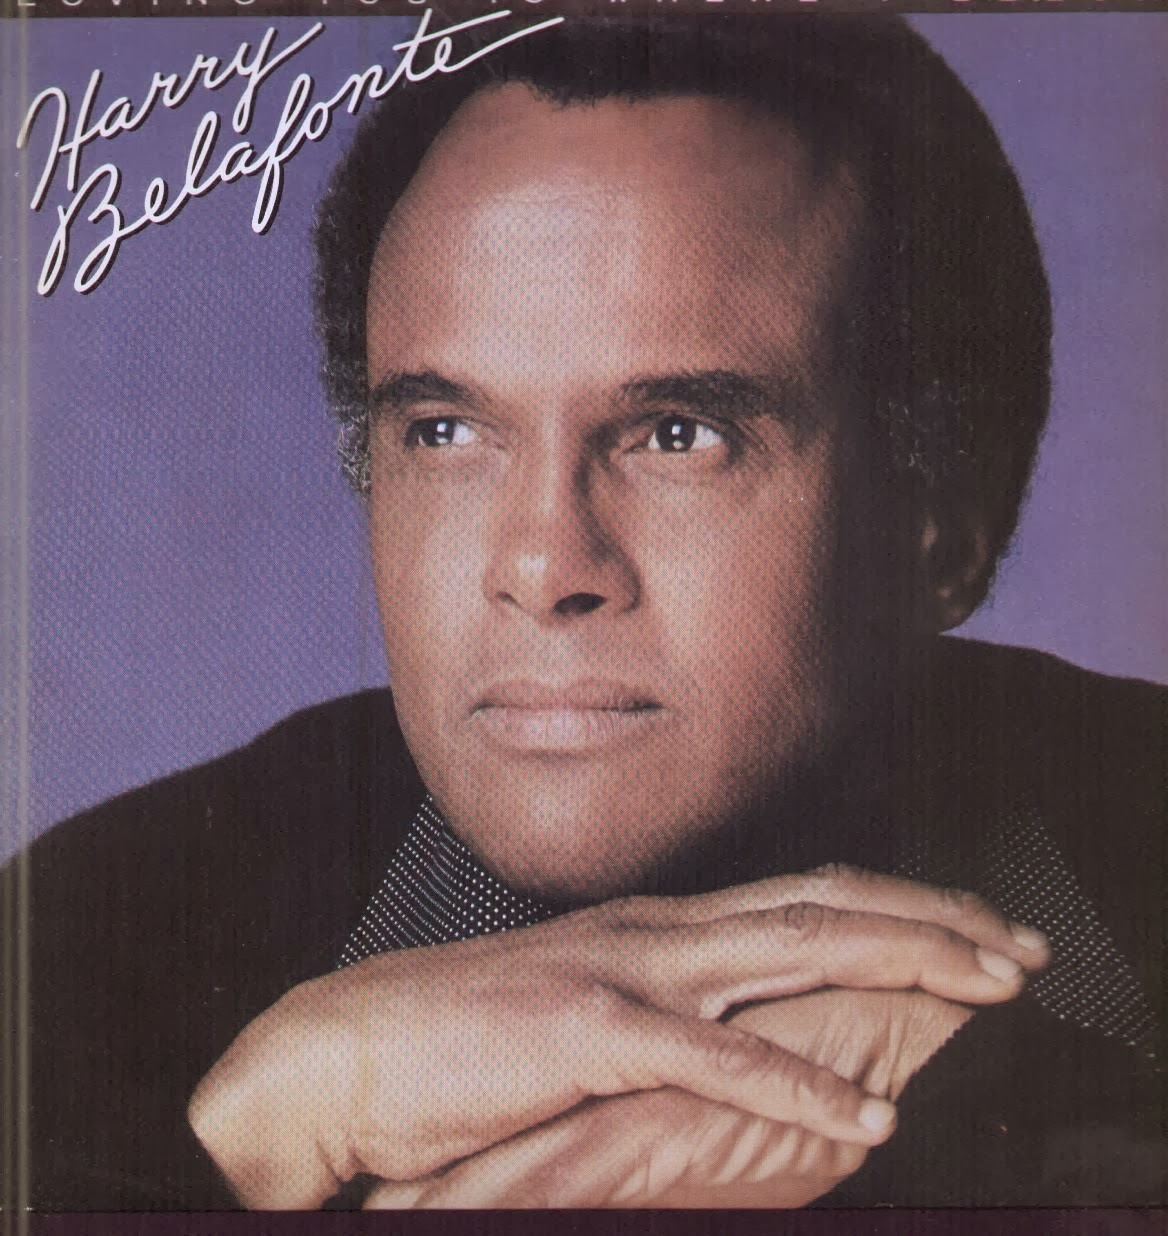 Harry Belafonte - Don't Ever Love Me / Mama Looka Boo Boo